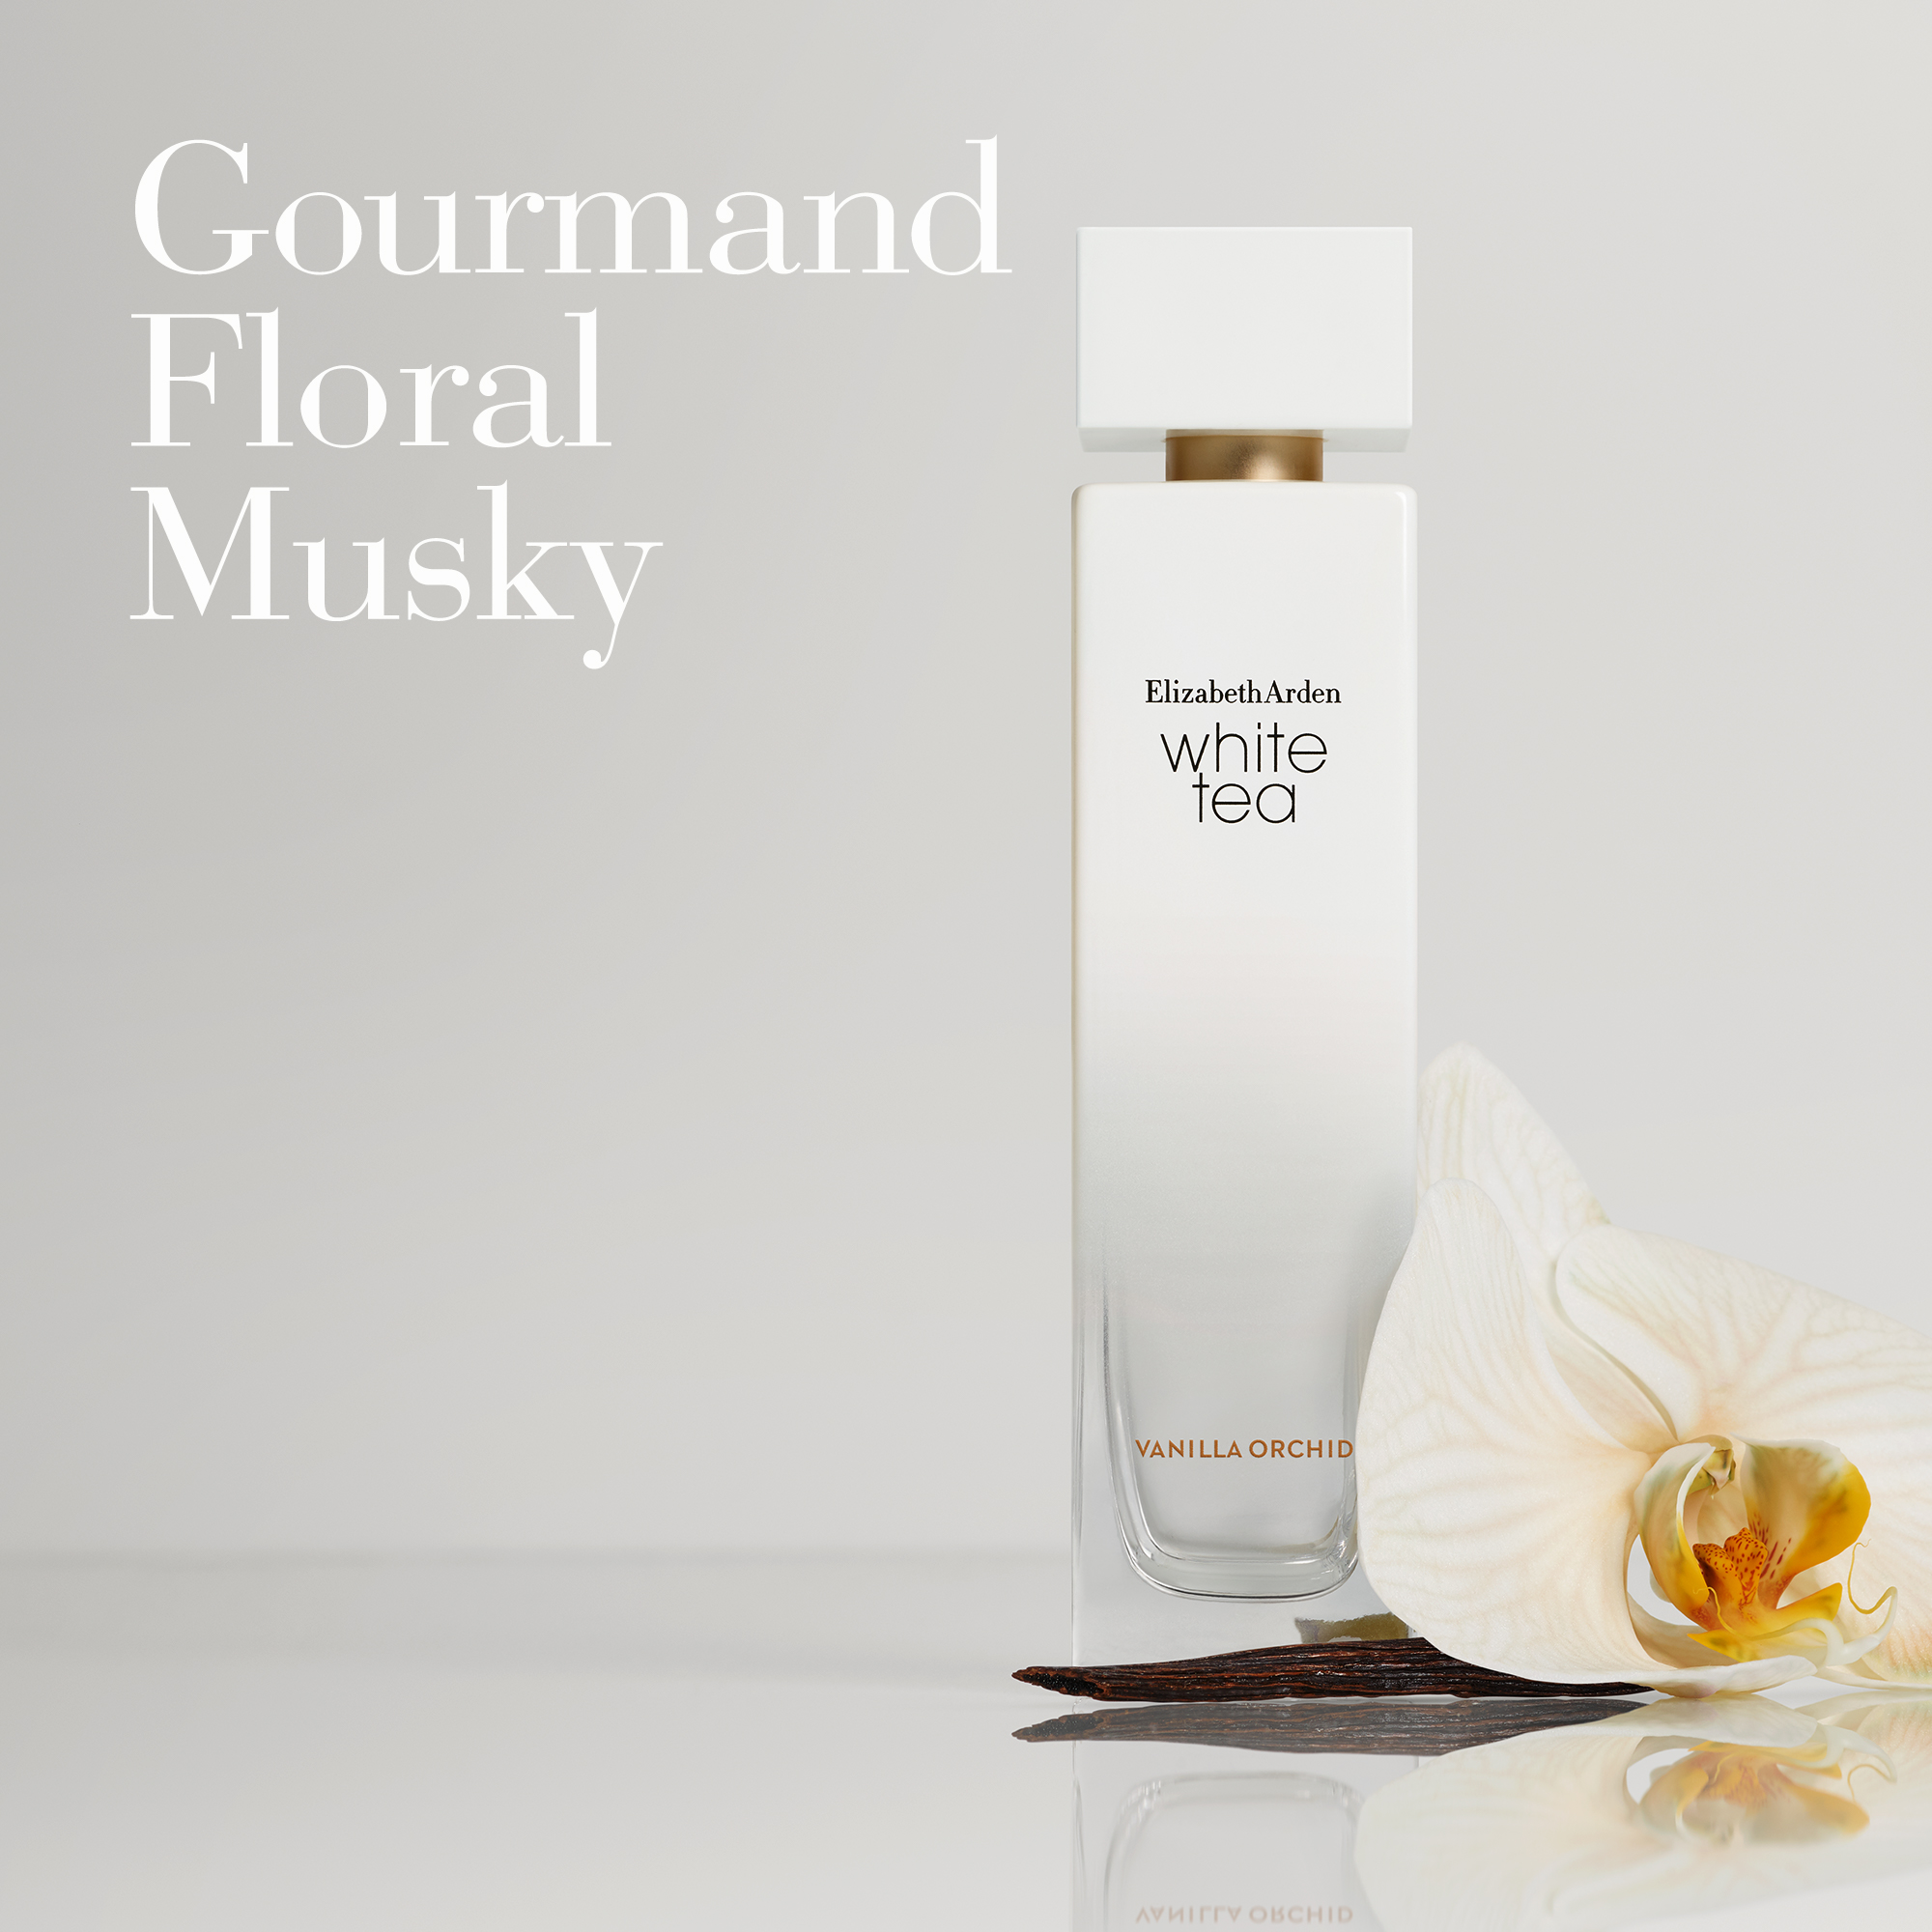 Olfactory: Gourmand, Floral and Musky